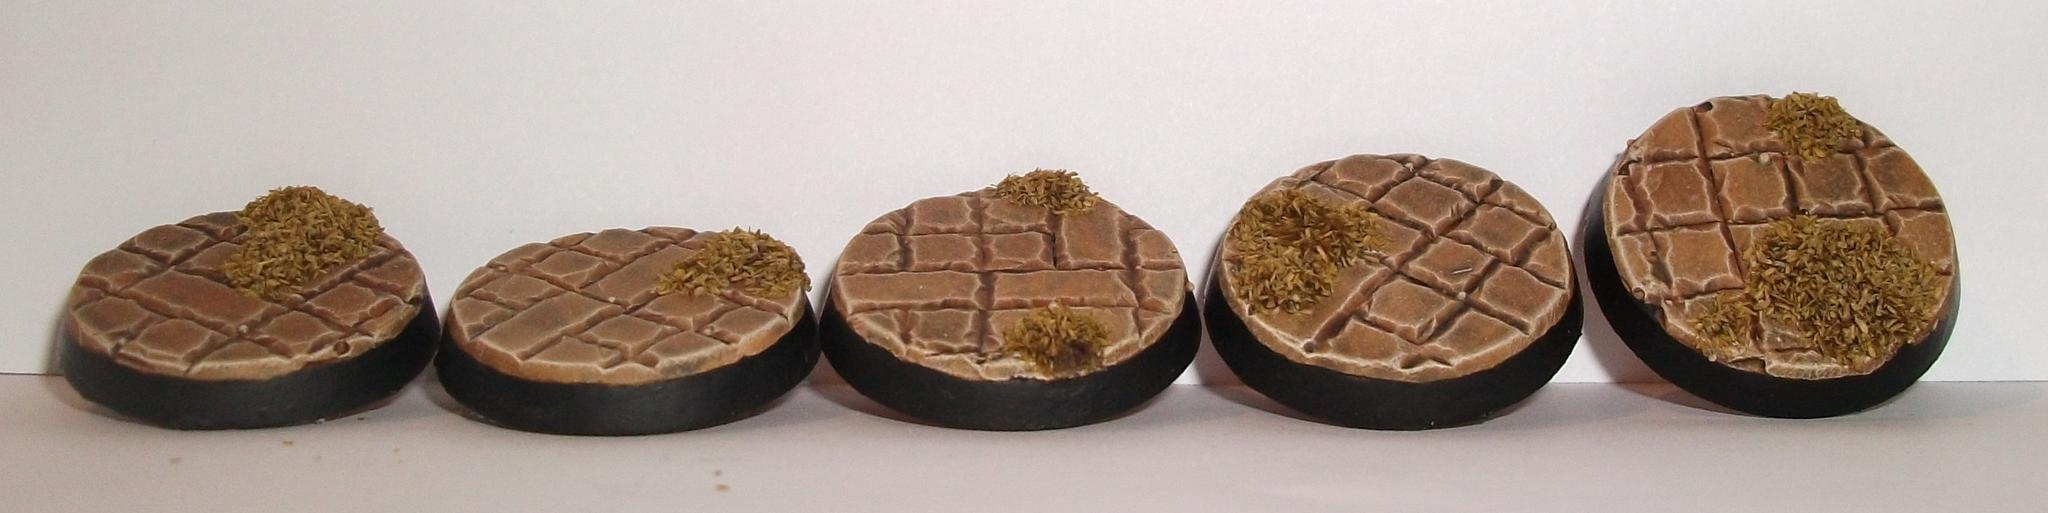 25mm, Base, Brick, Round